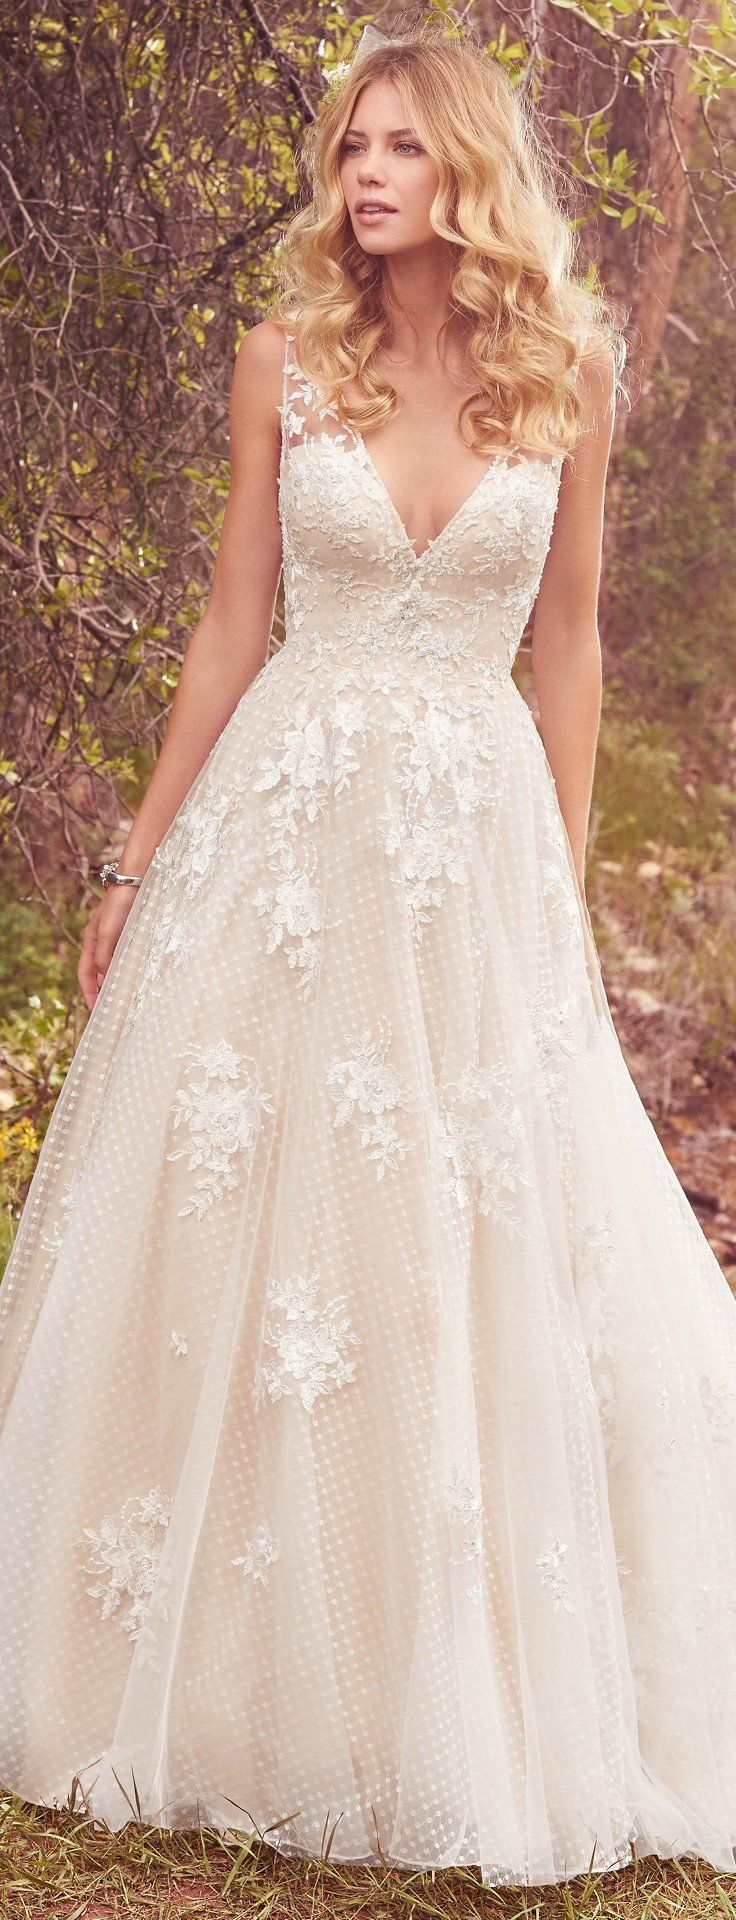 Wedding dress by Maggie Sottero 2017 | @maggiesotero #maggiesottero #maggiebride